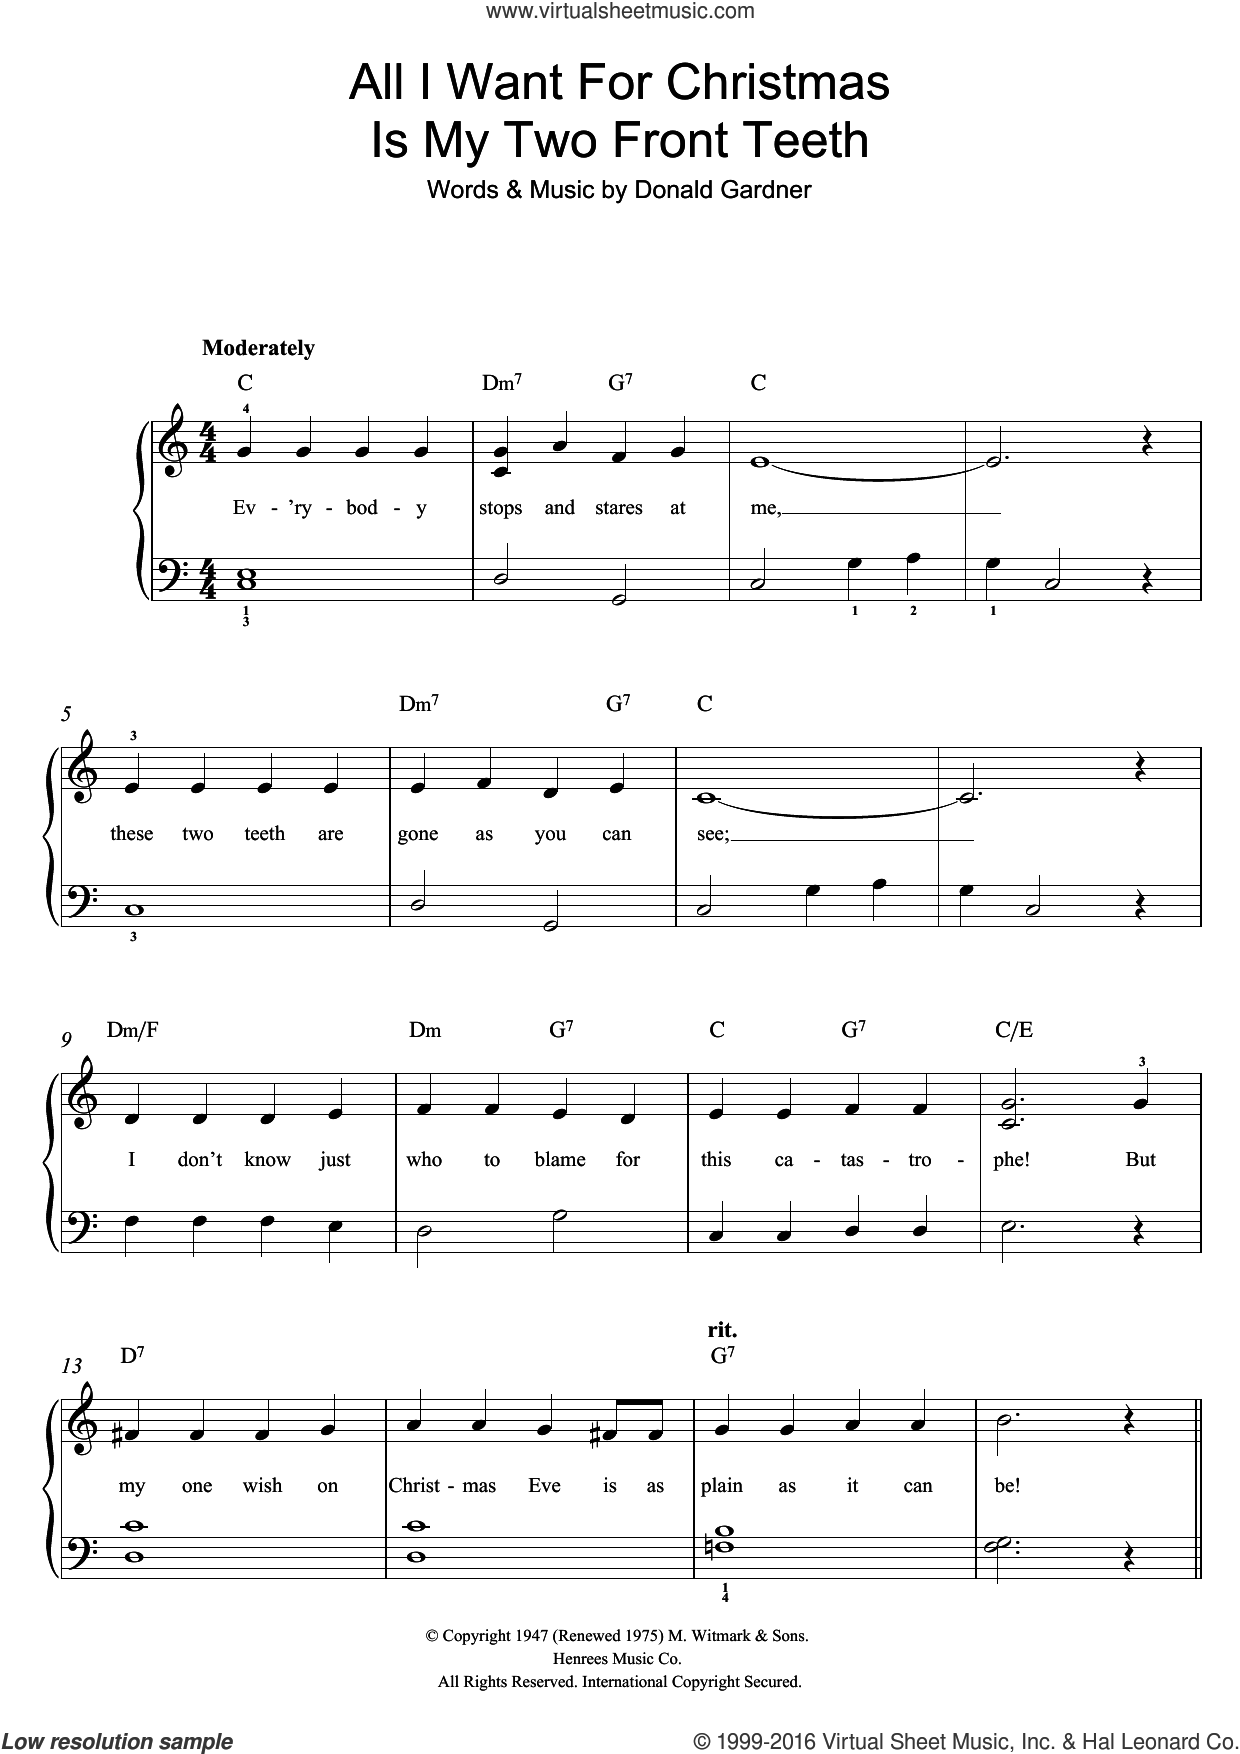 All I Want For Christmas Is My Two Front Teeth sheet music for piano ...